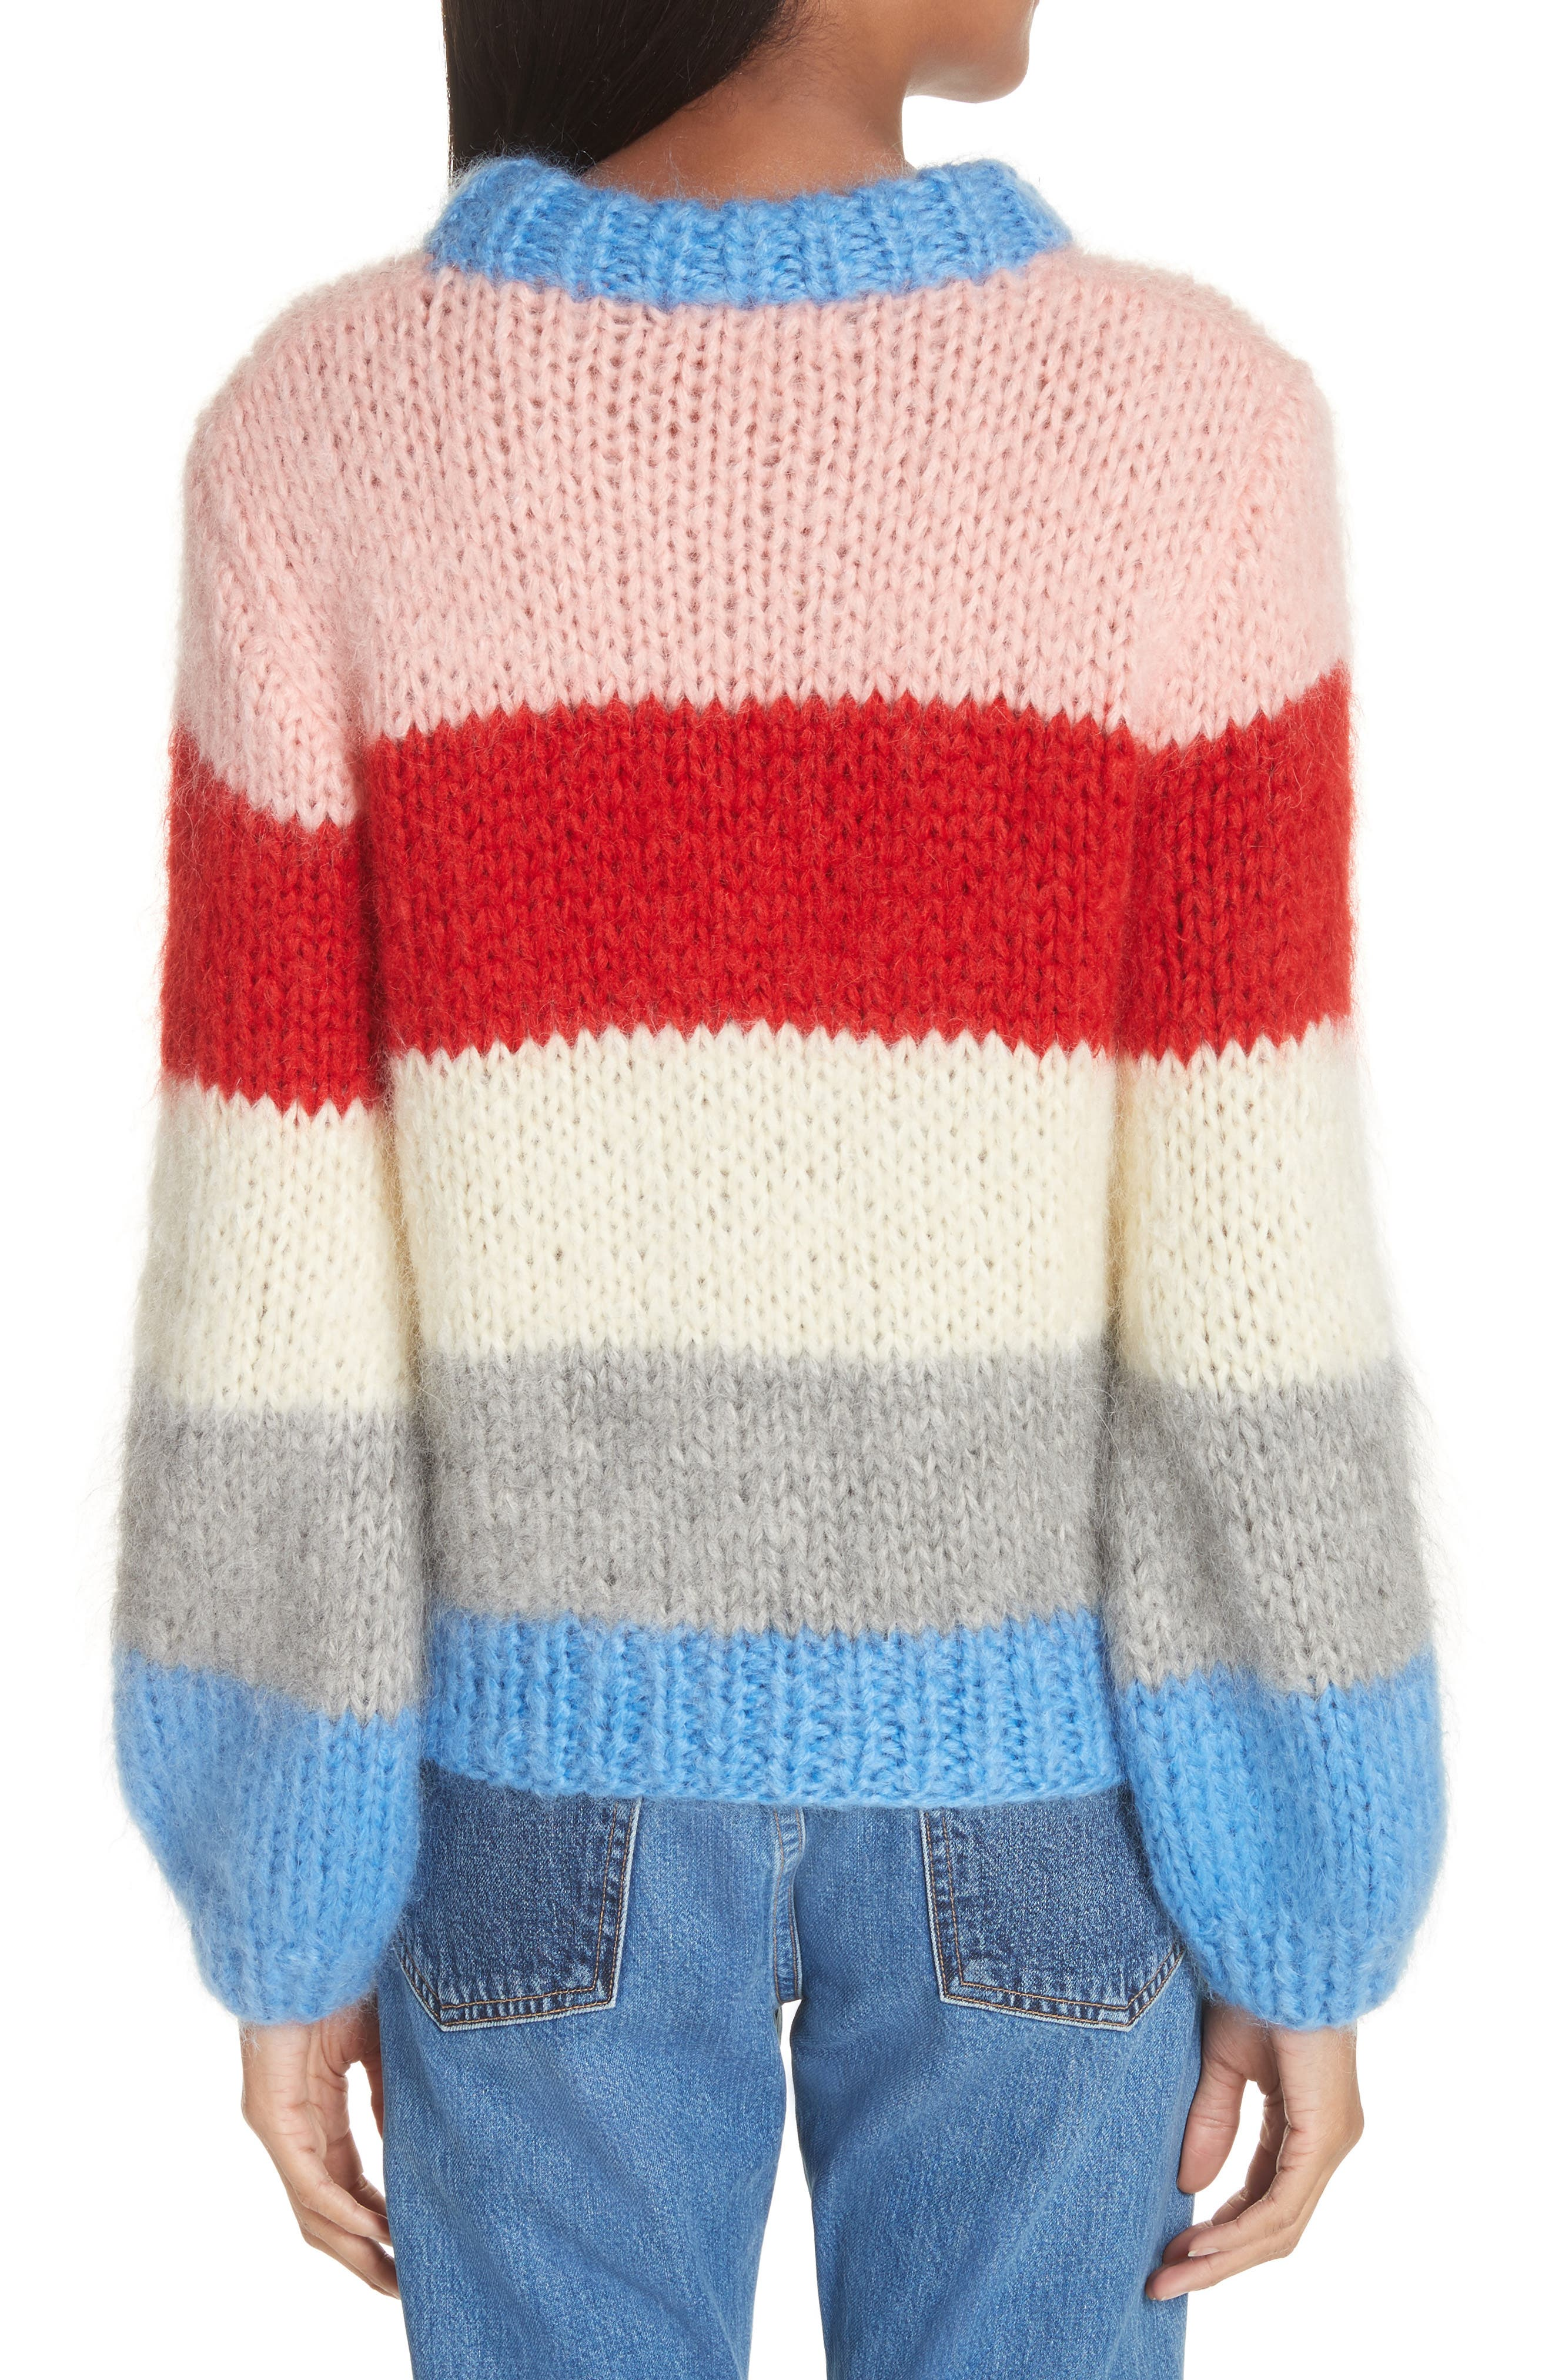 Julliard Multistripe Sweater,                             Alternate thumbnail 2, color,                             400